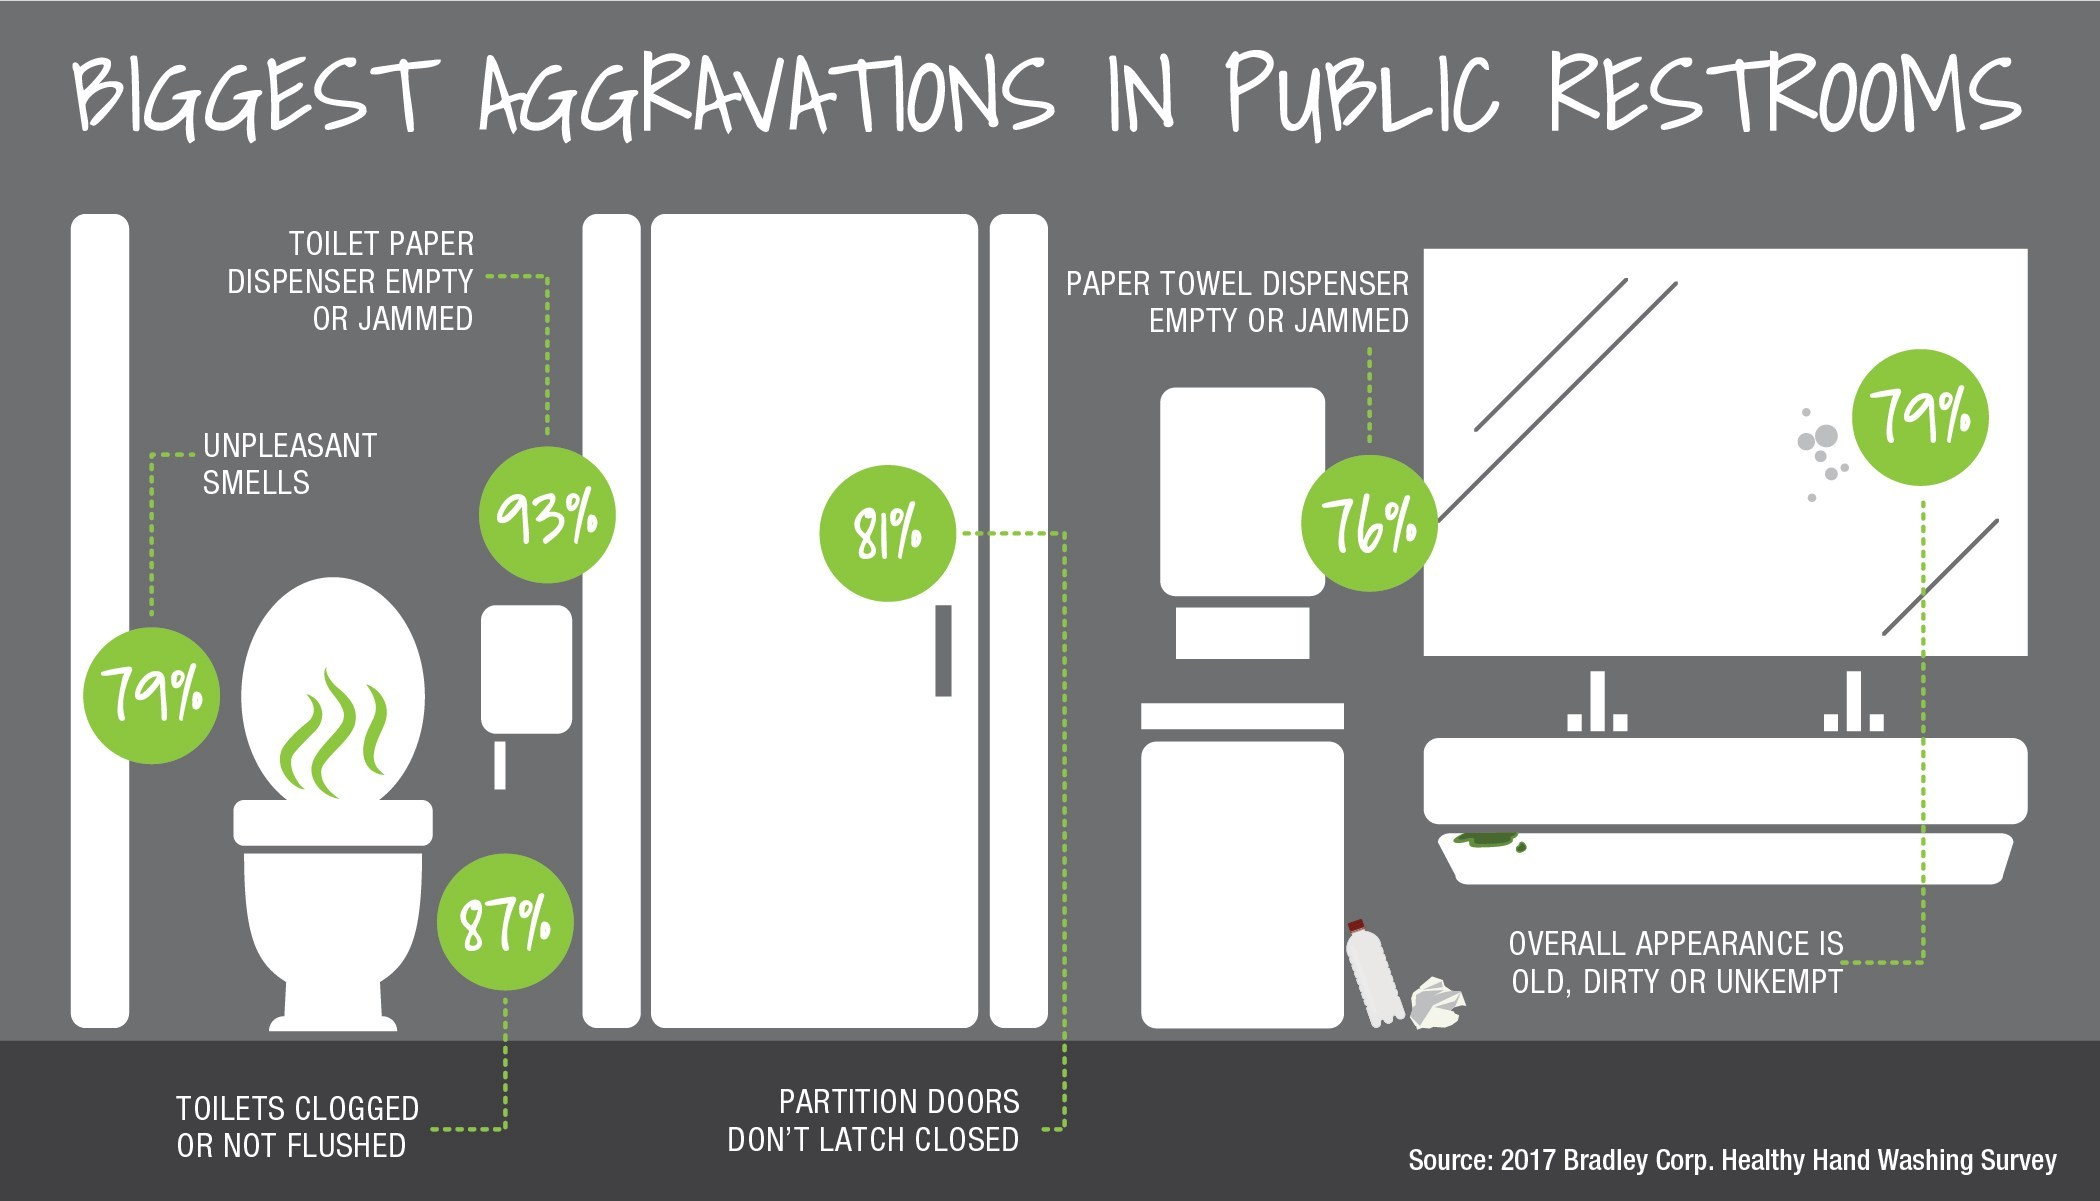 The Healthy Hand Washing Survey from Bradley Corp. reveals the top two frustrations with public restrooms - toilet paper dispensers that are empty or jammed and toilets that are clogged or not flushed.